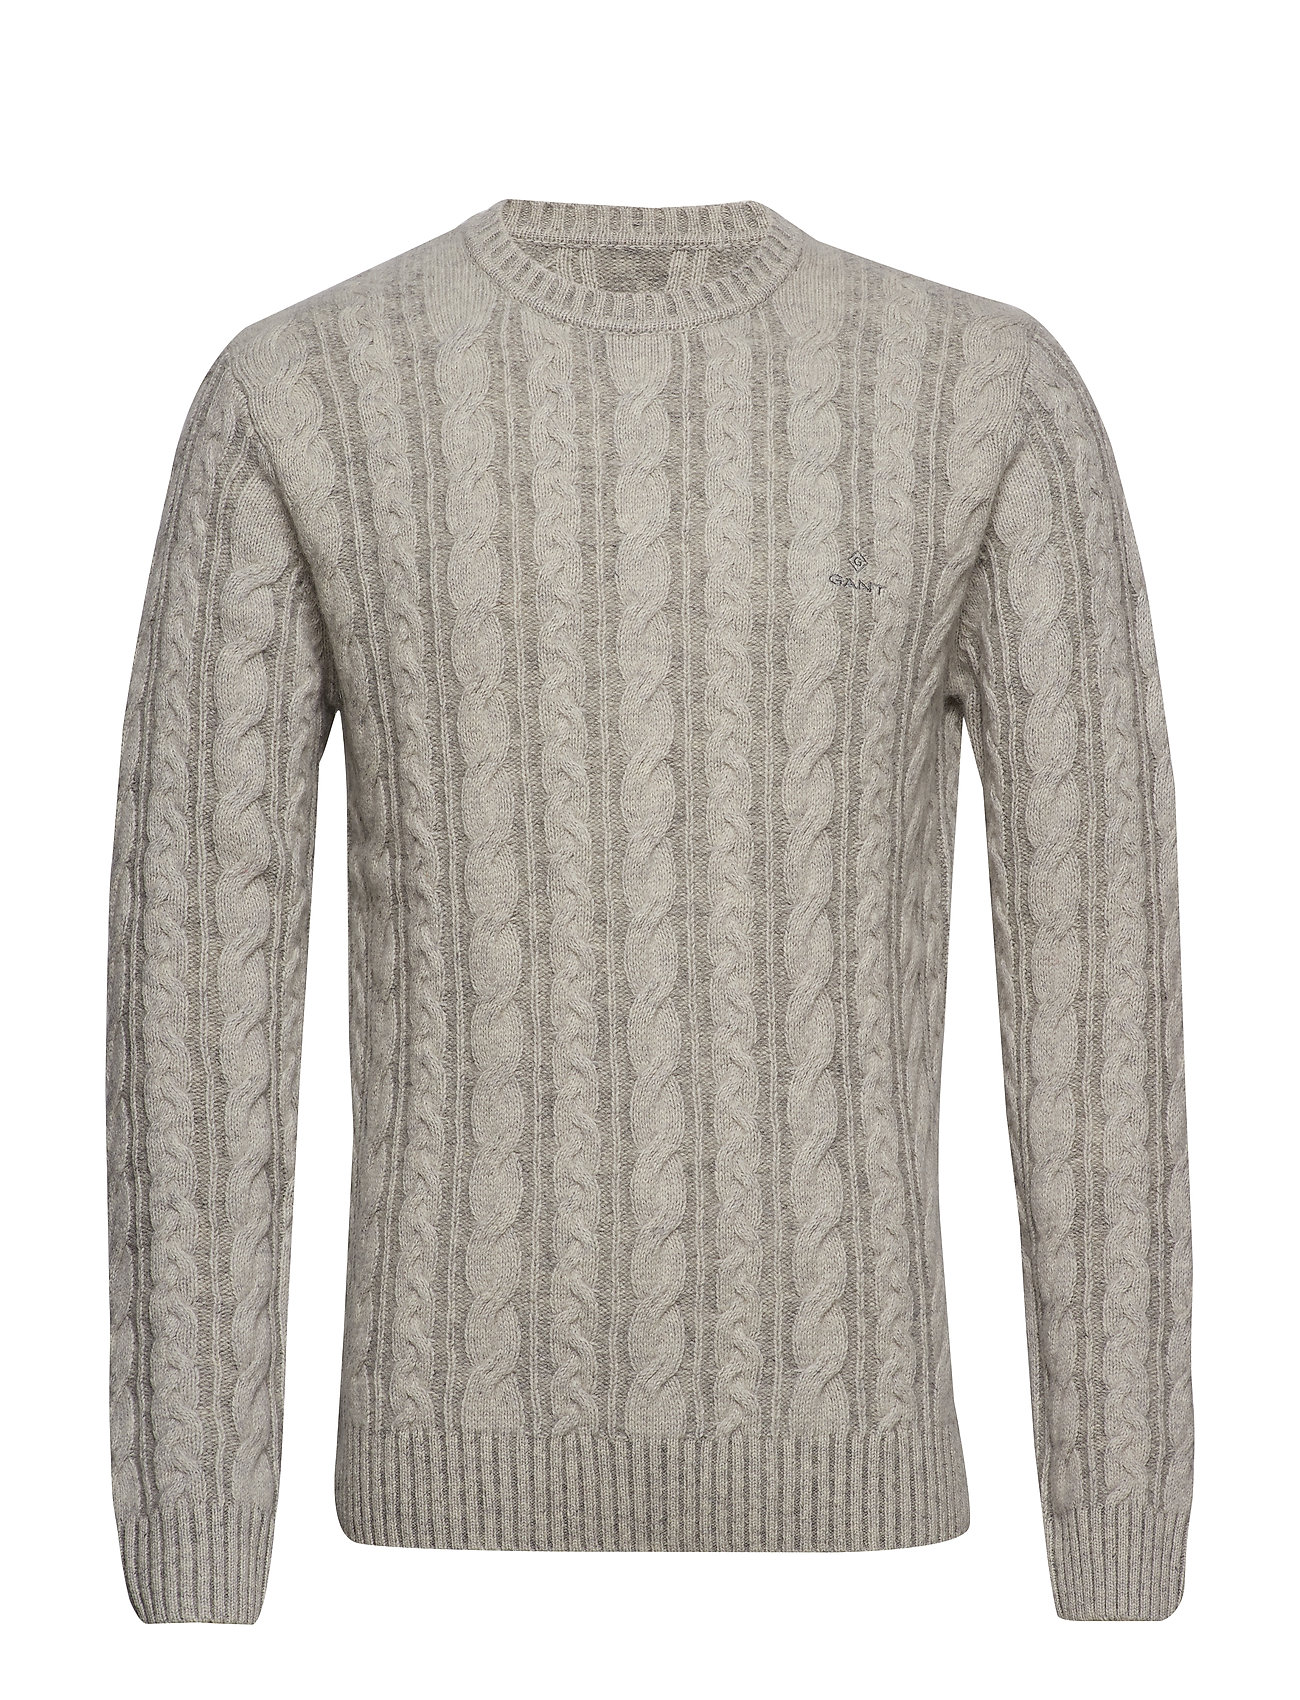 Gant D2. WINTER FADED CABLE CREW - GREY MELANGE